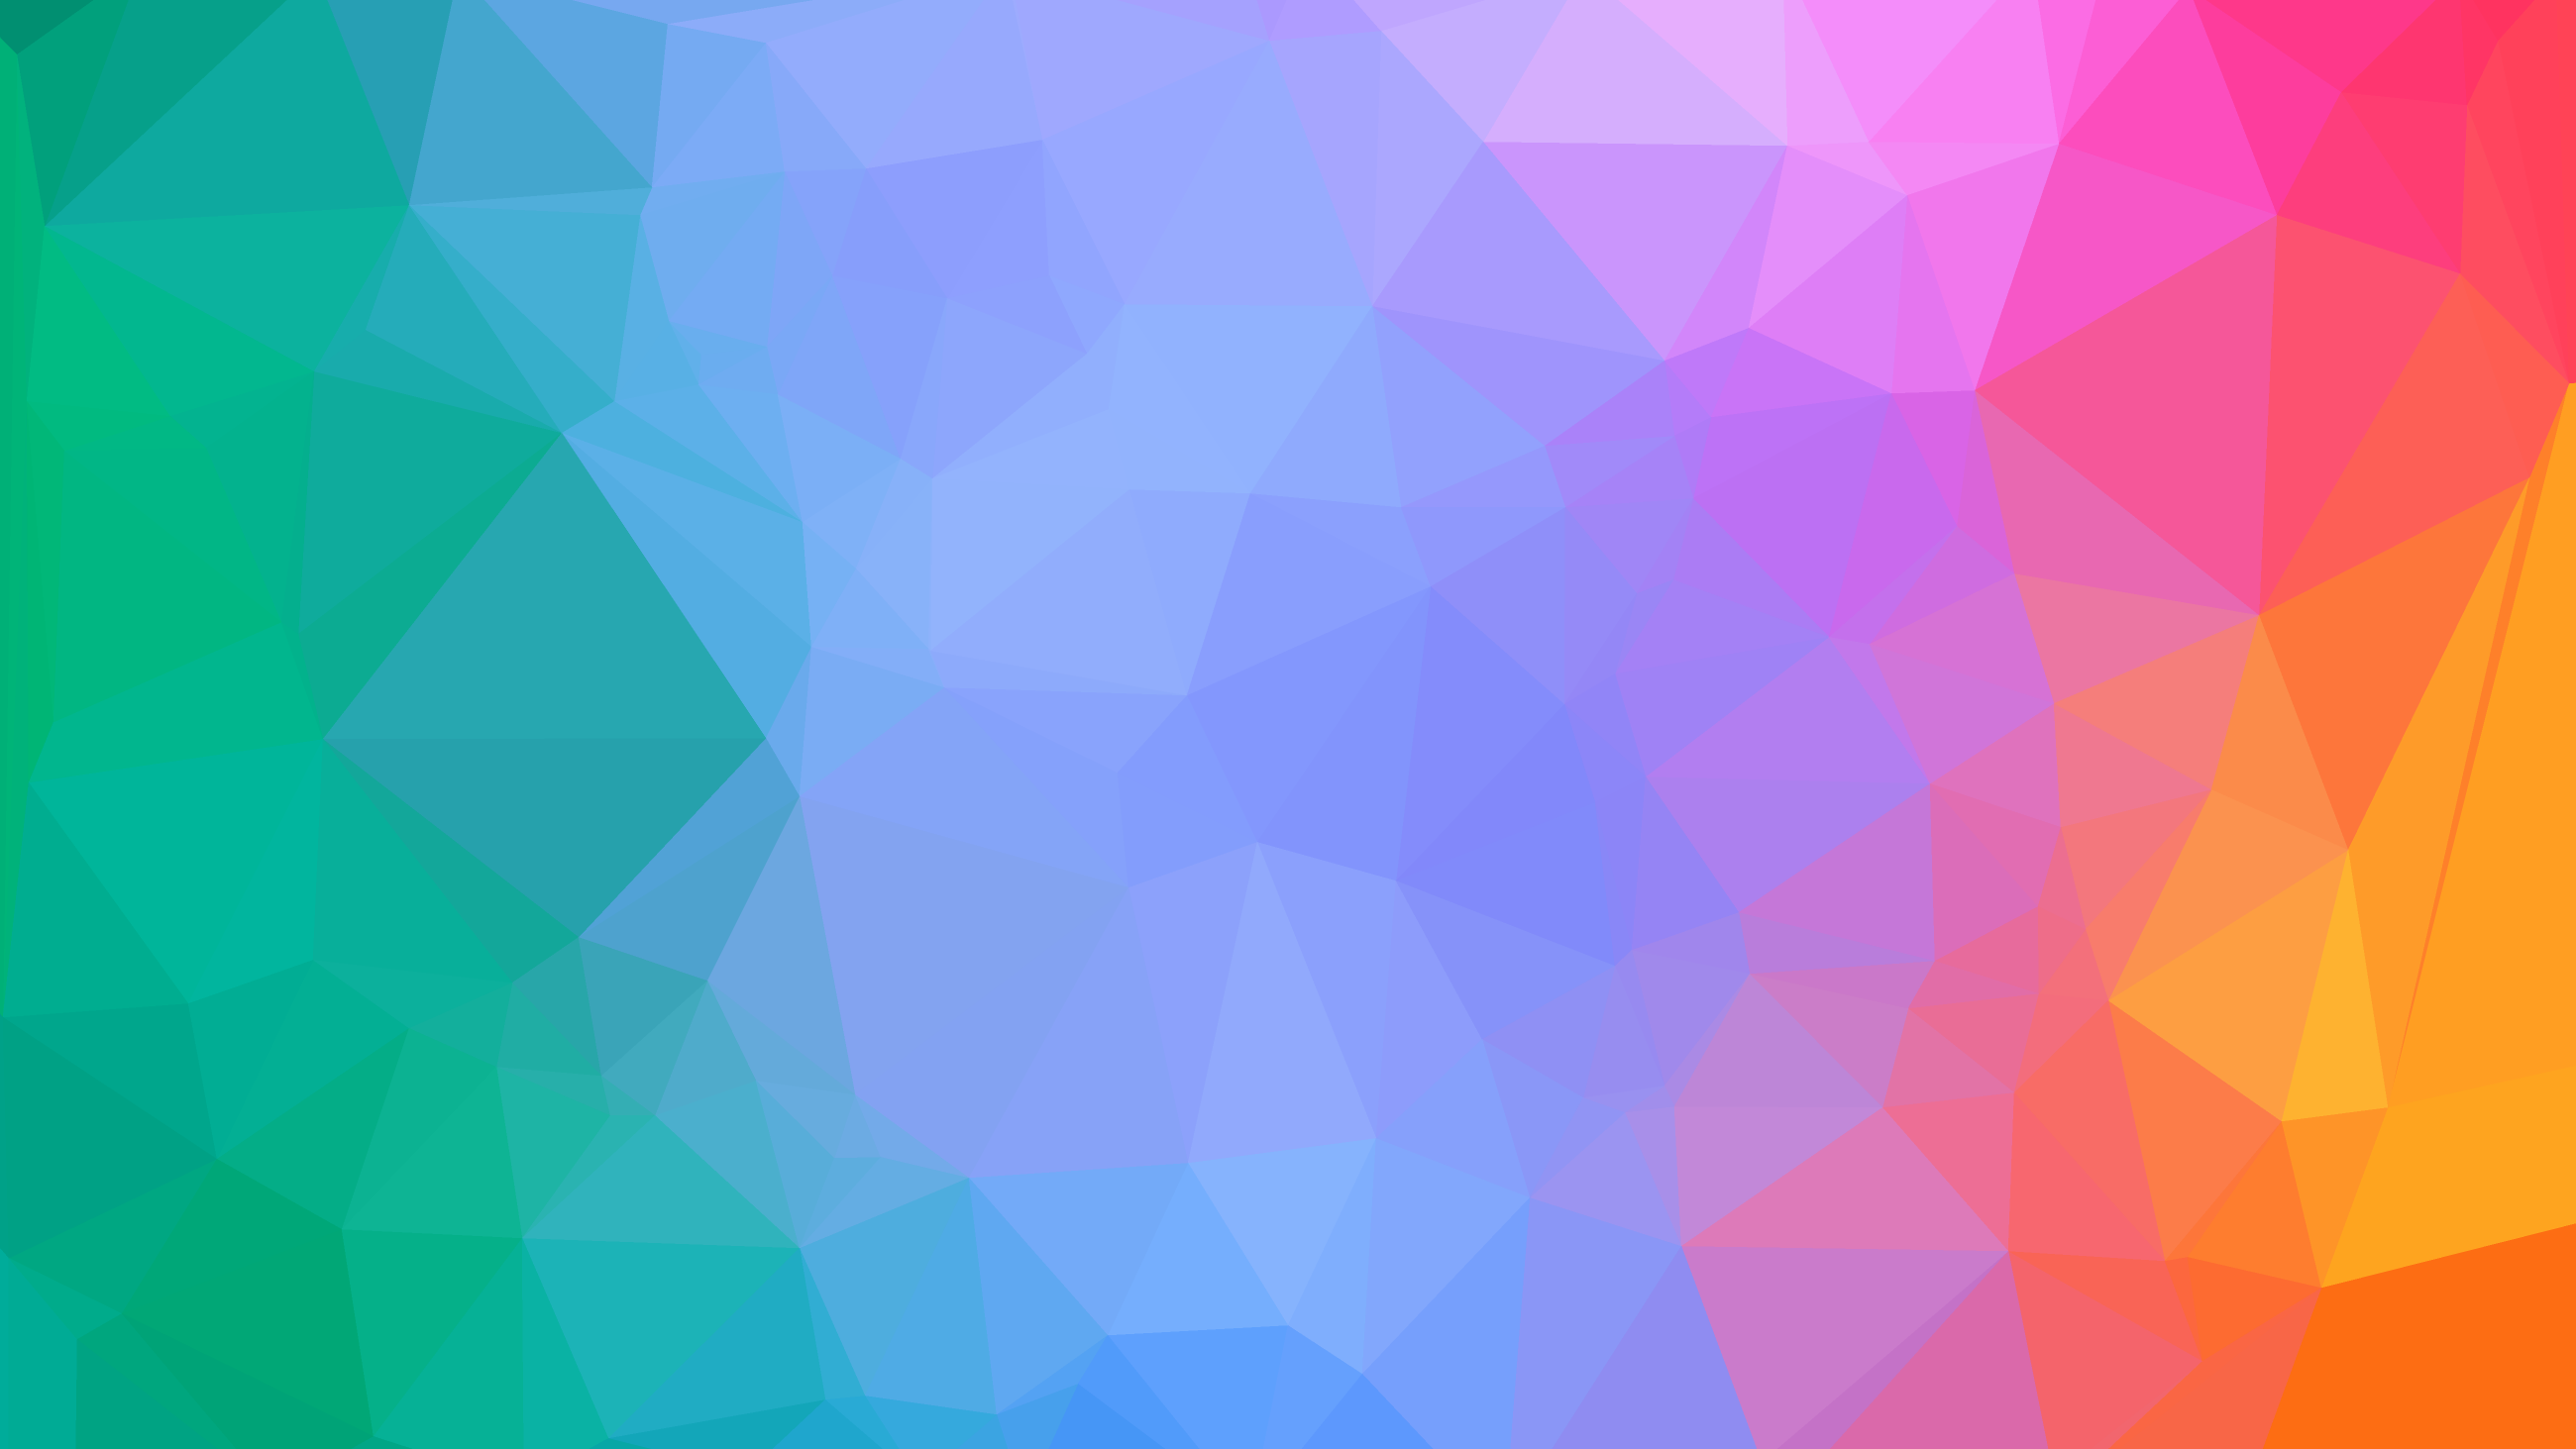 Wallpaper geometric color 1 2k uhd by airworldking on - Geometric wallpaper colorful ...